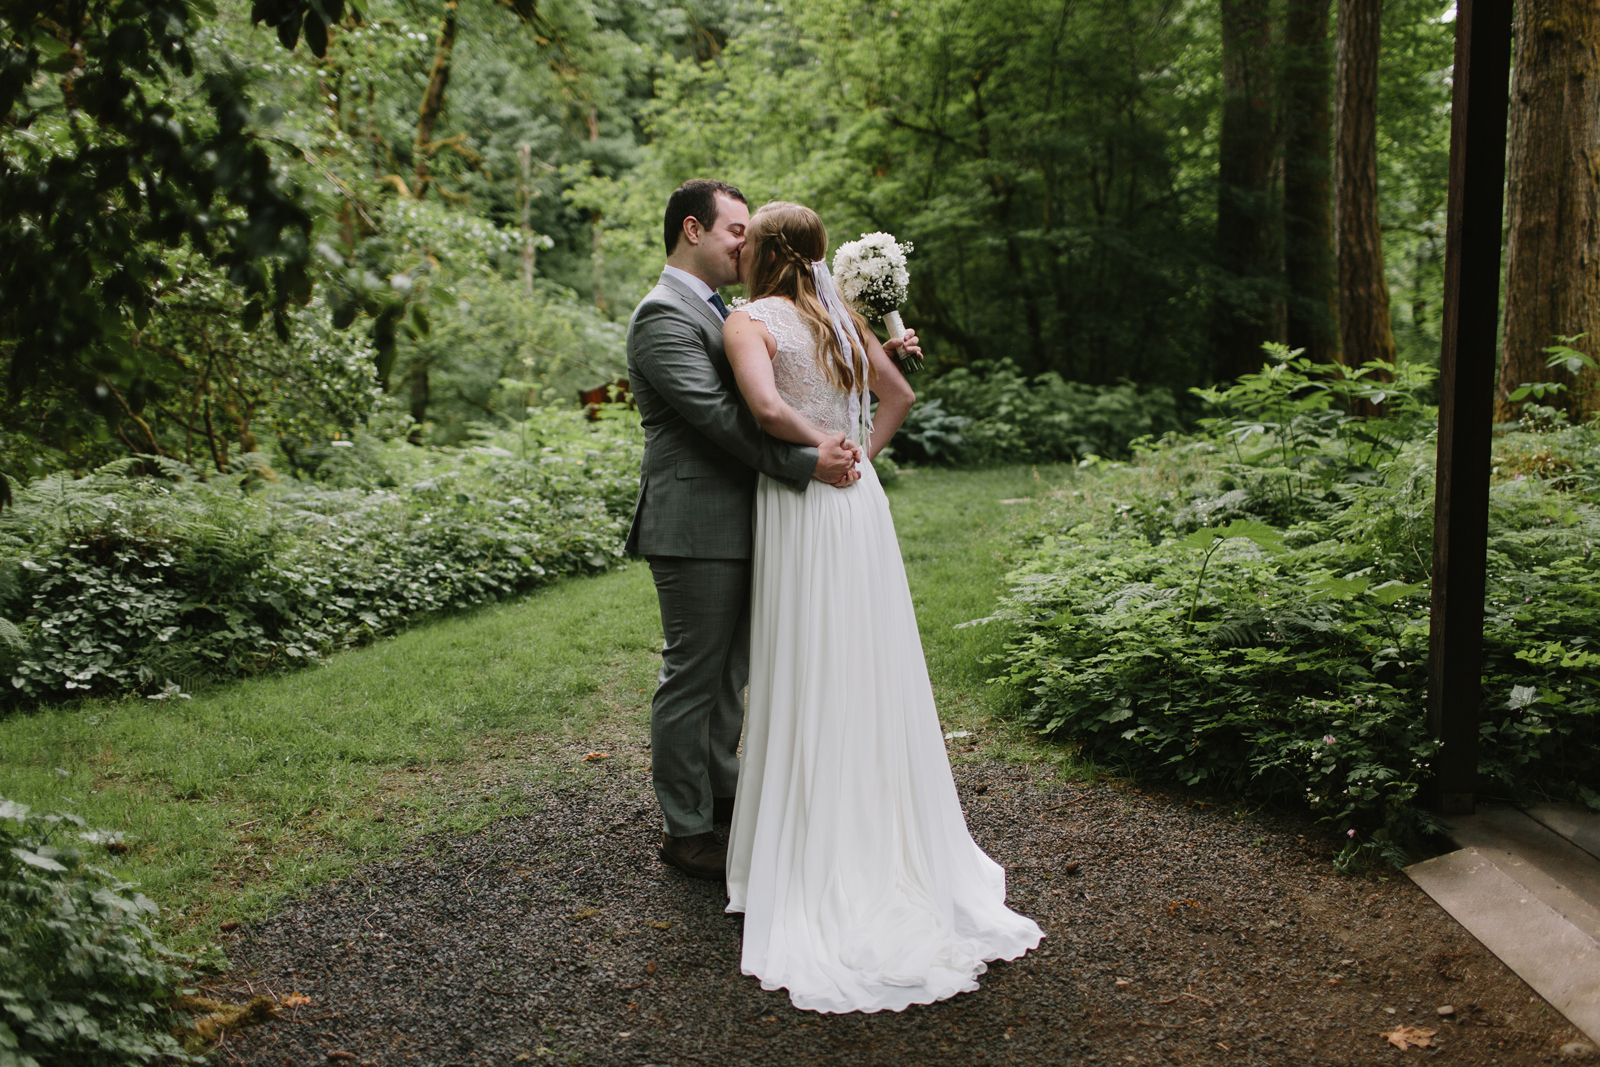 The bride and groom kiss after being married at Bridal Veil Lakes in Corbett, OR